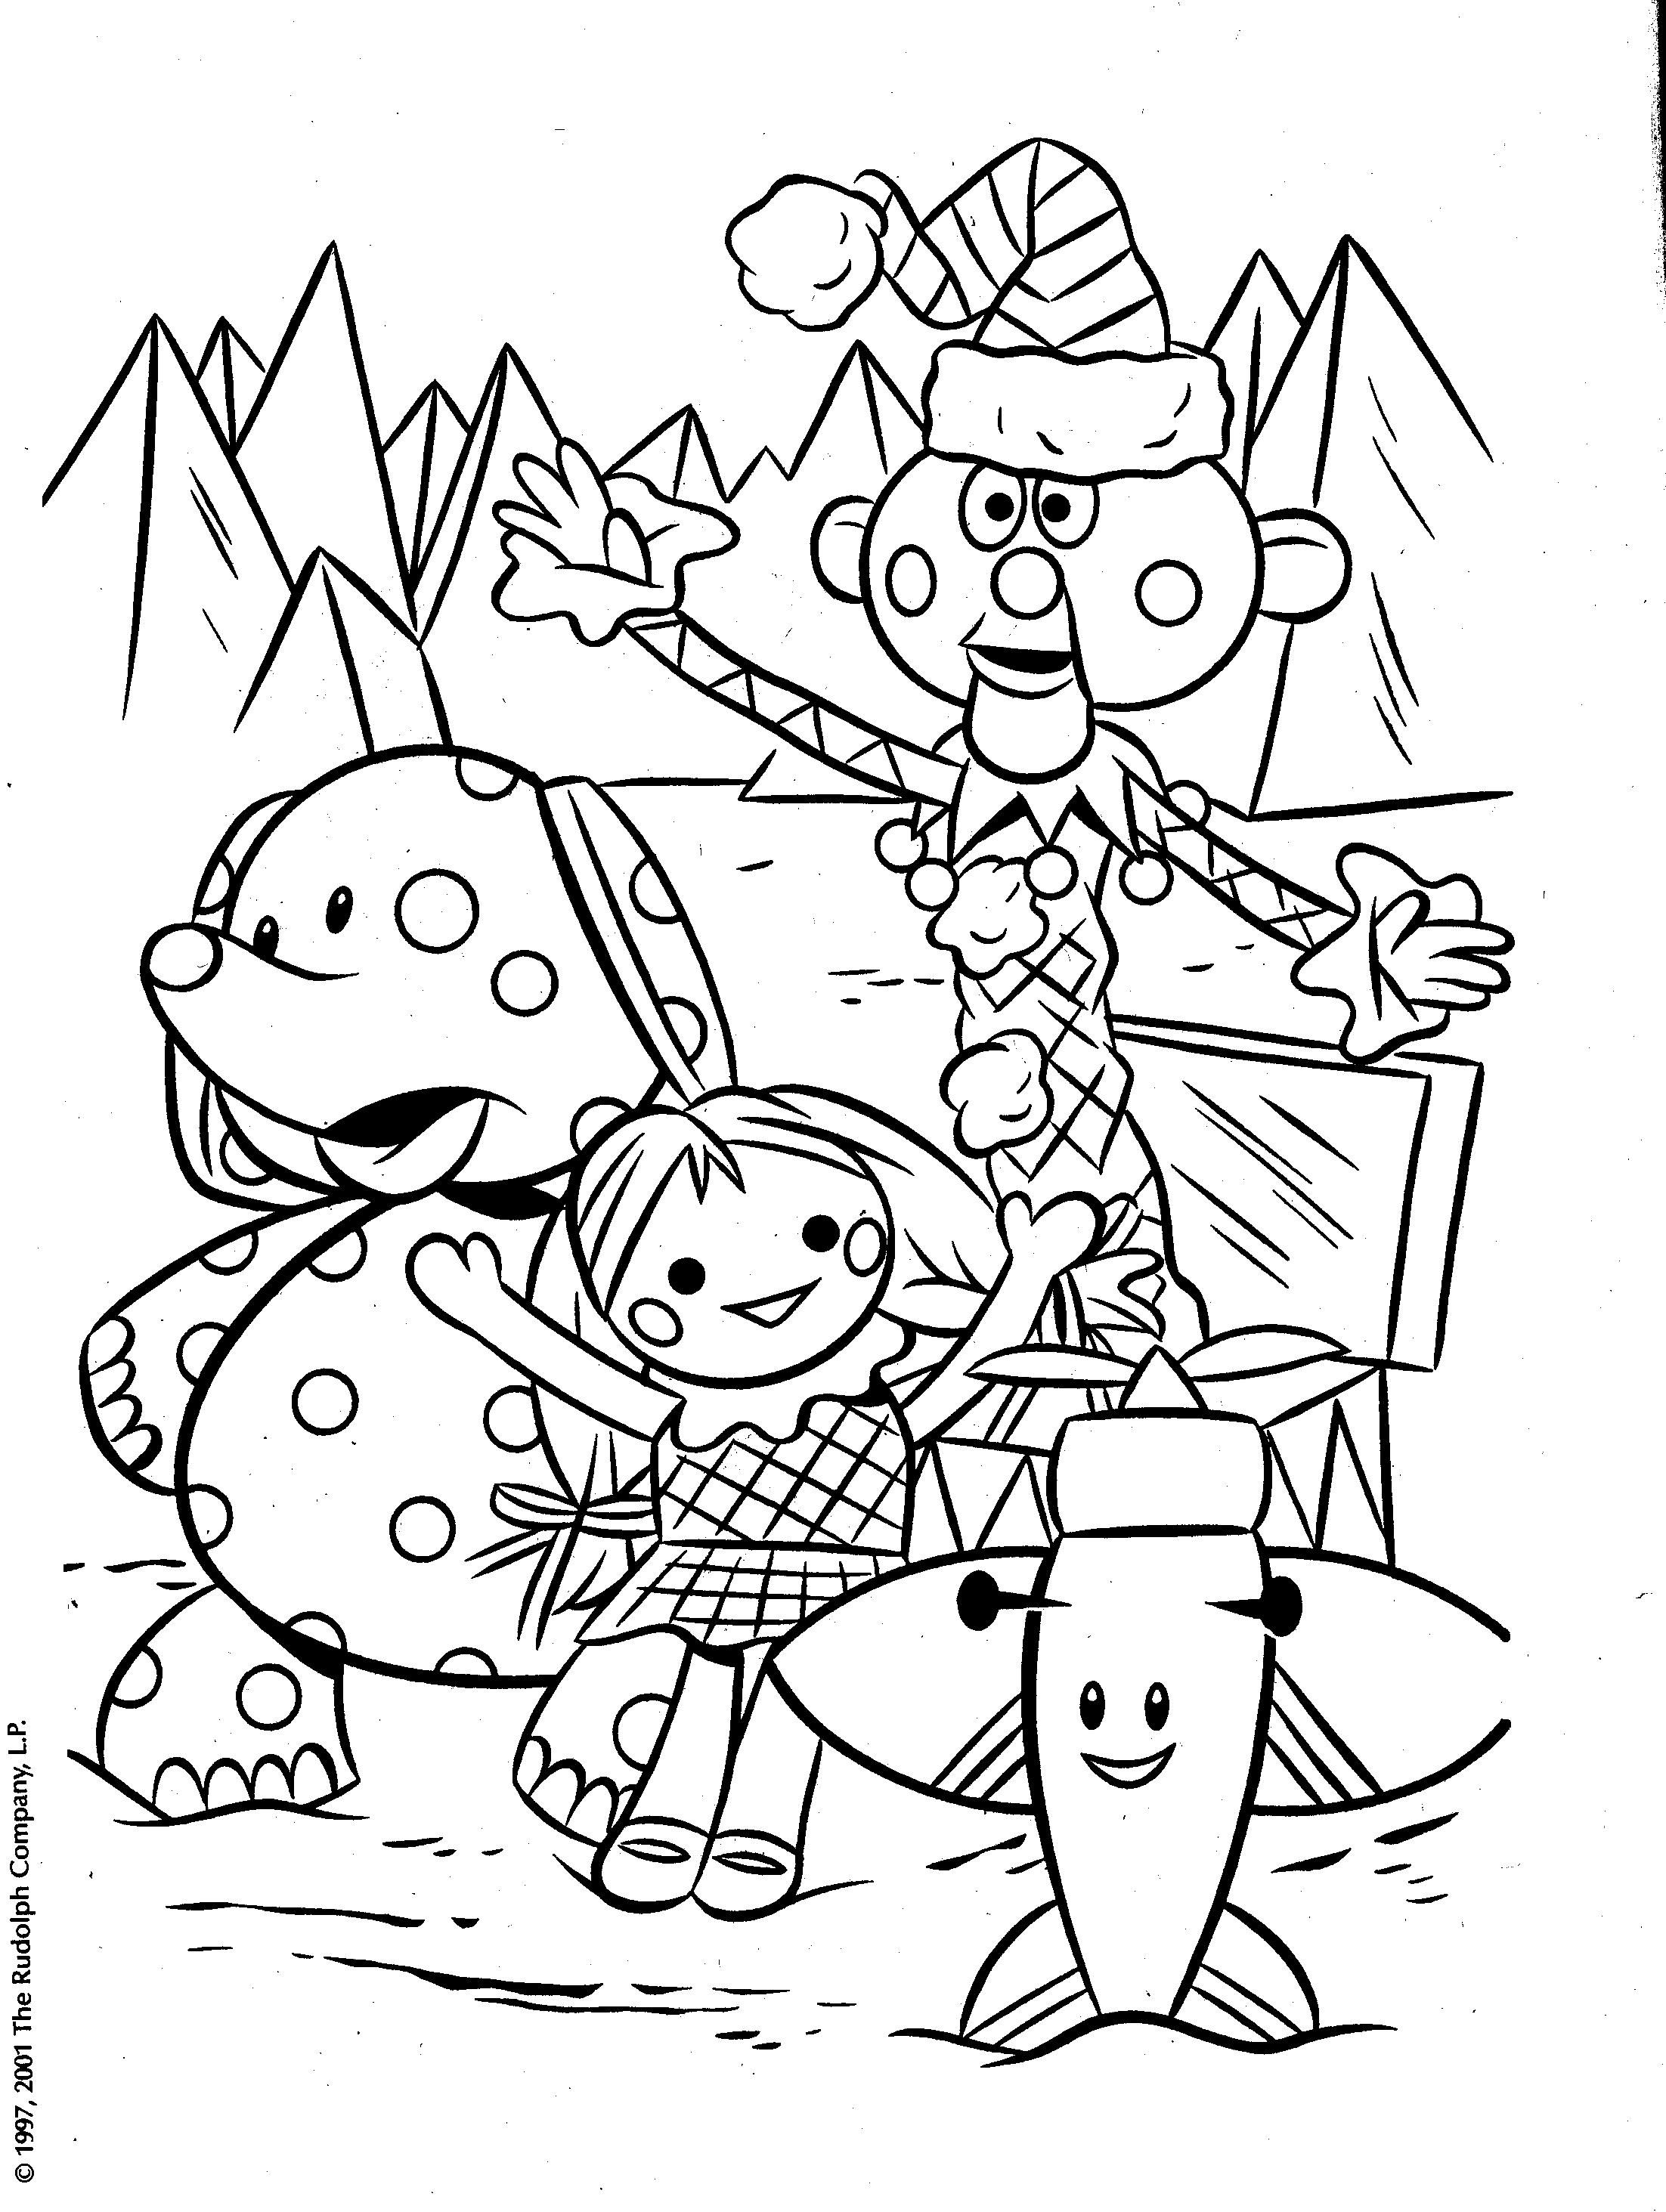 Rudolph Misfit Toys Coloring Pages | grammy picks | Pinterest | Toy ...